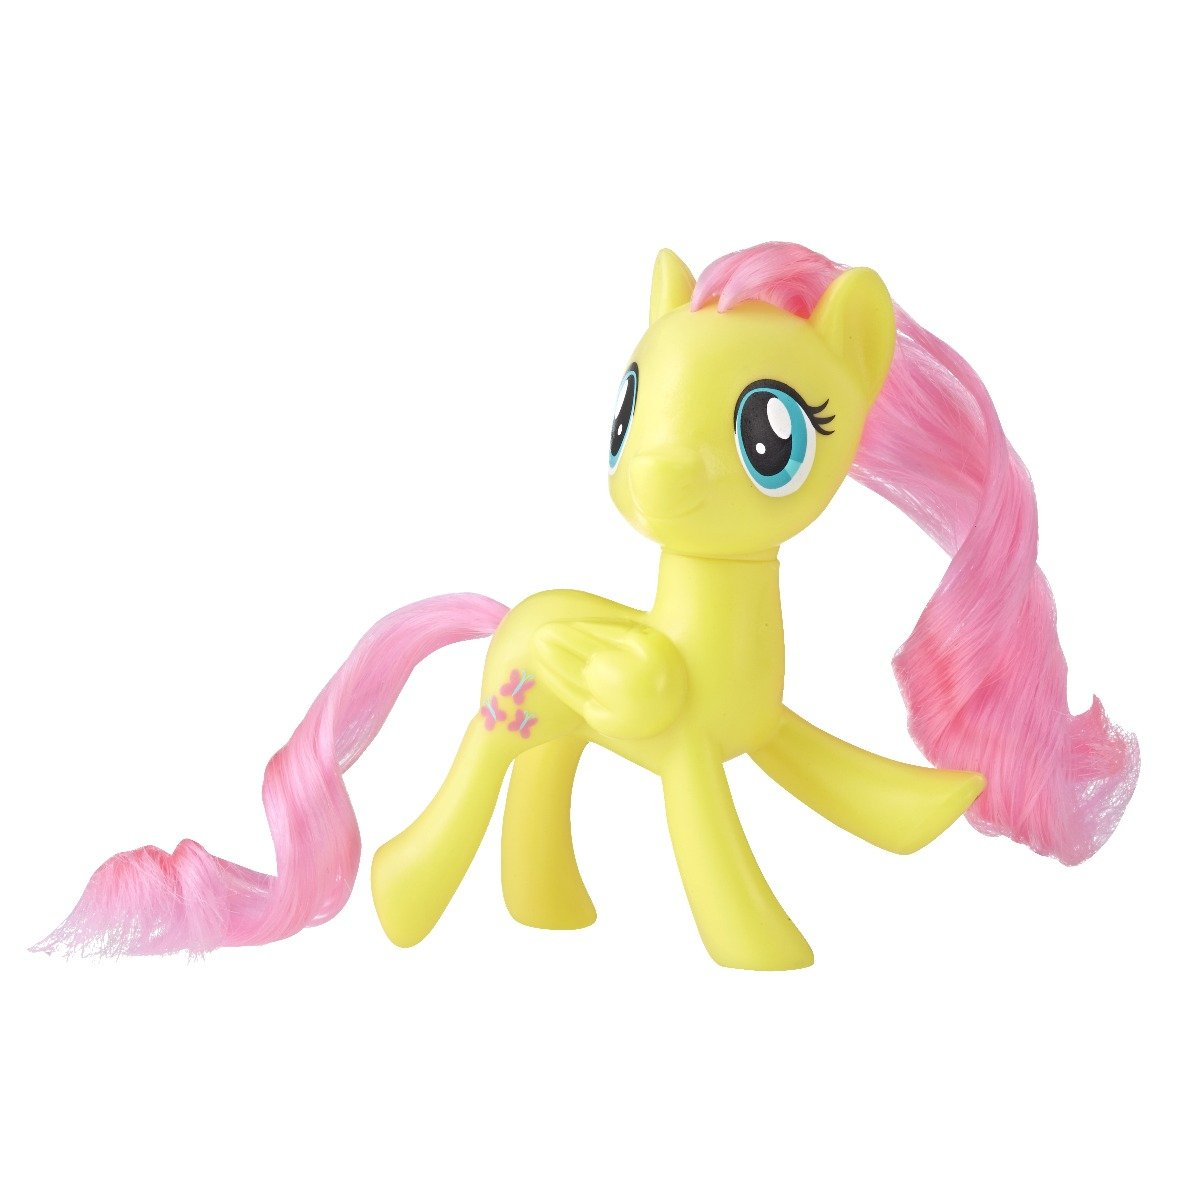 Figurina My Little Pony - Fluttershy, E5008